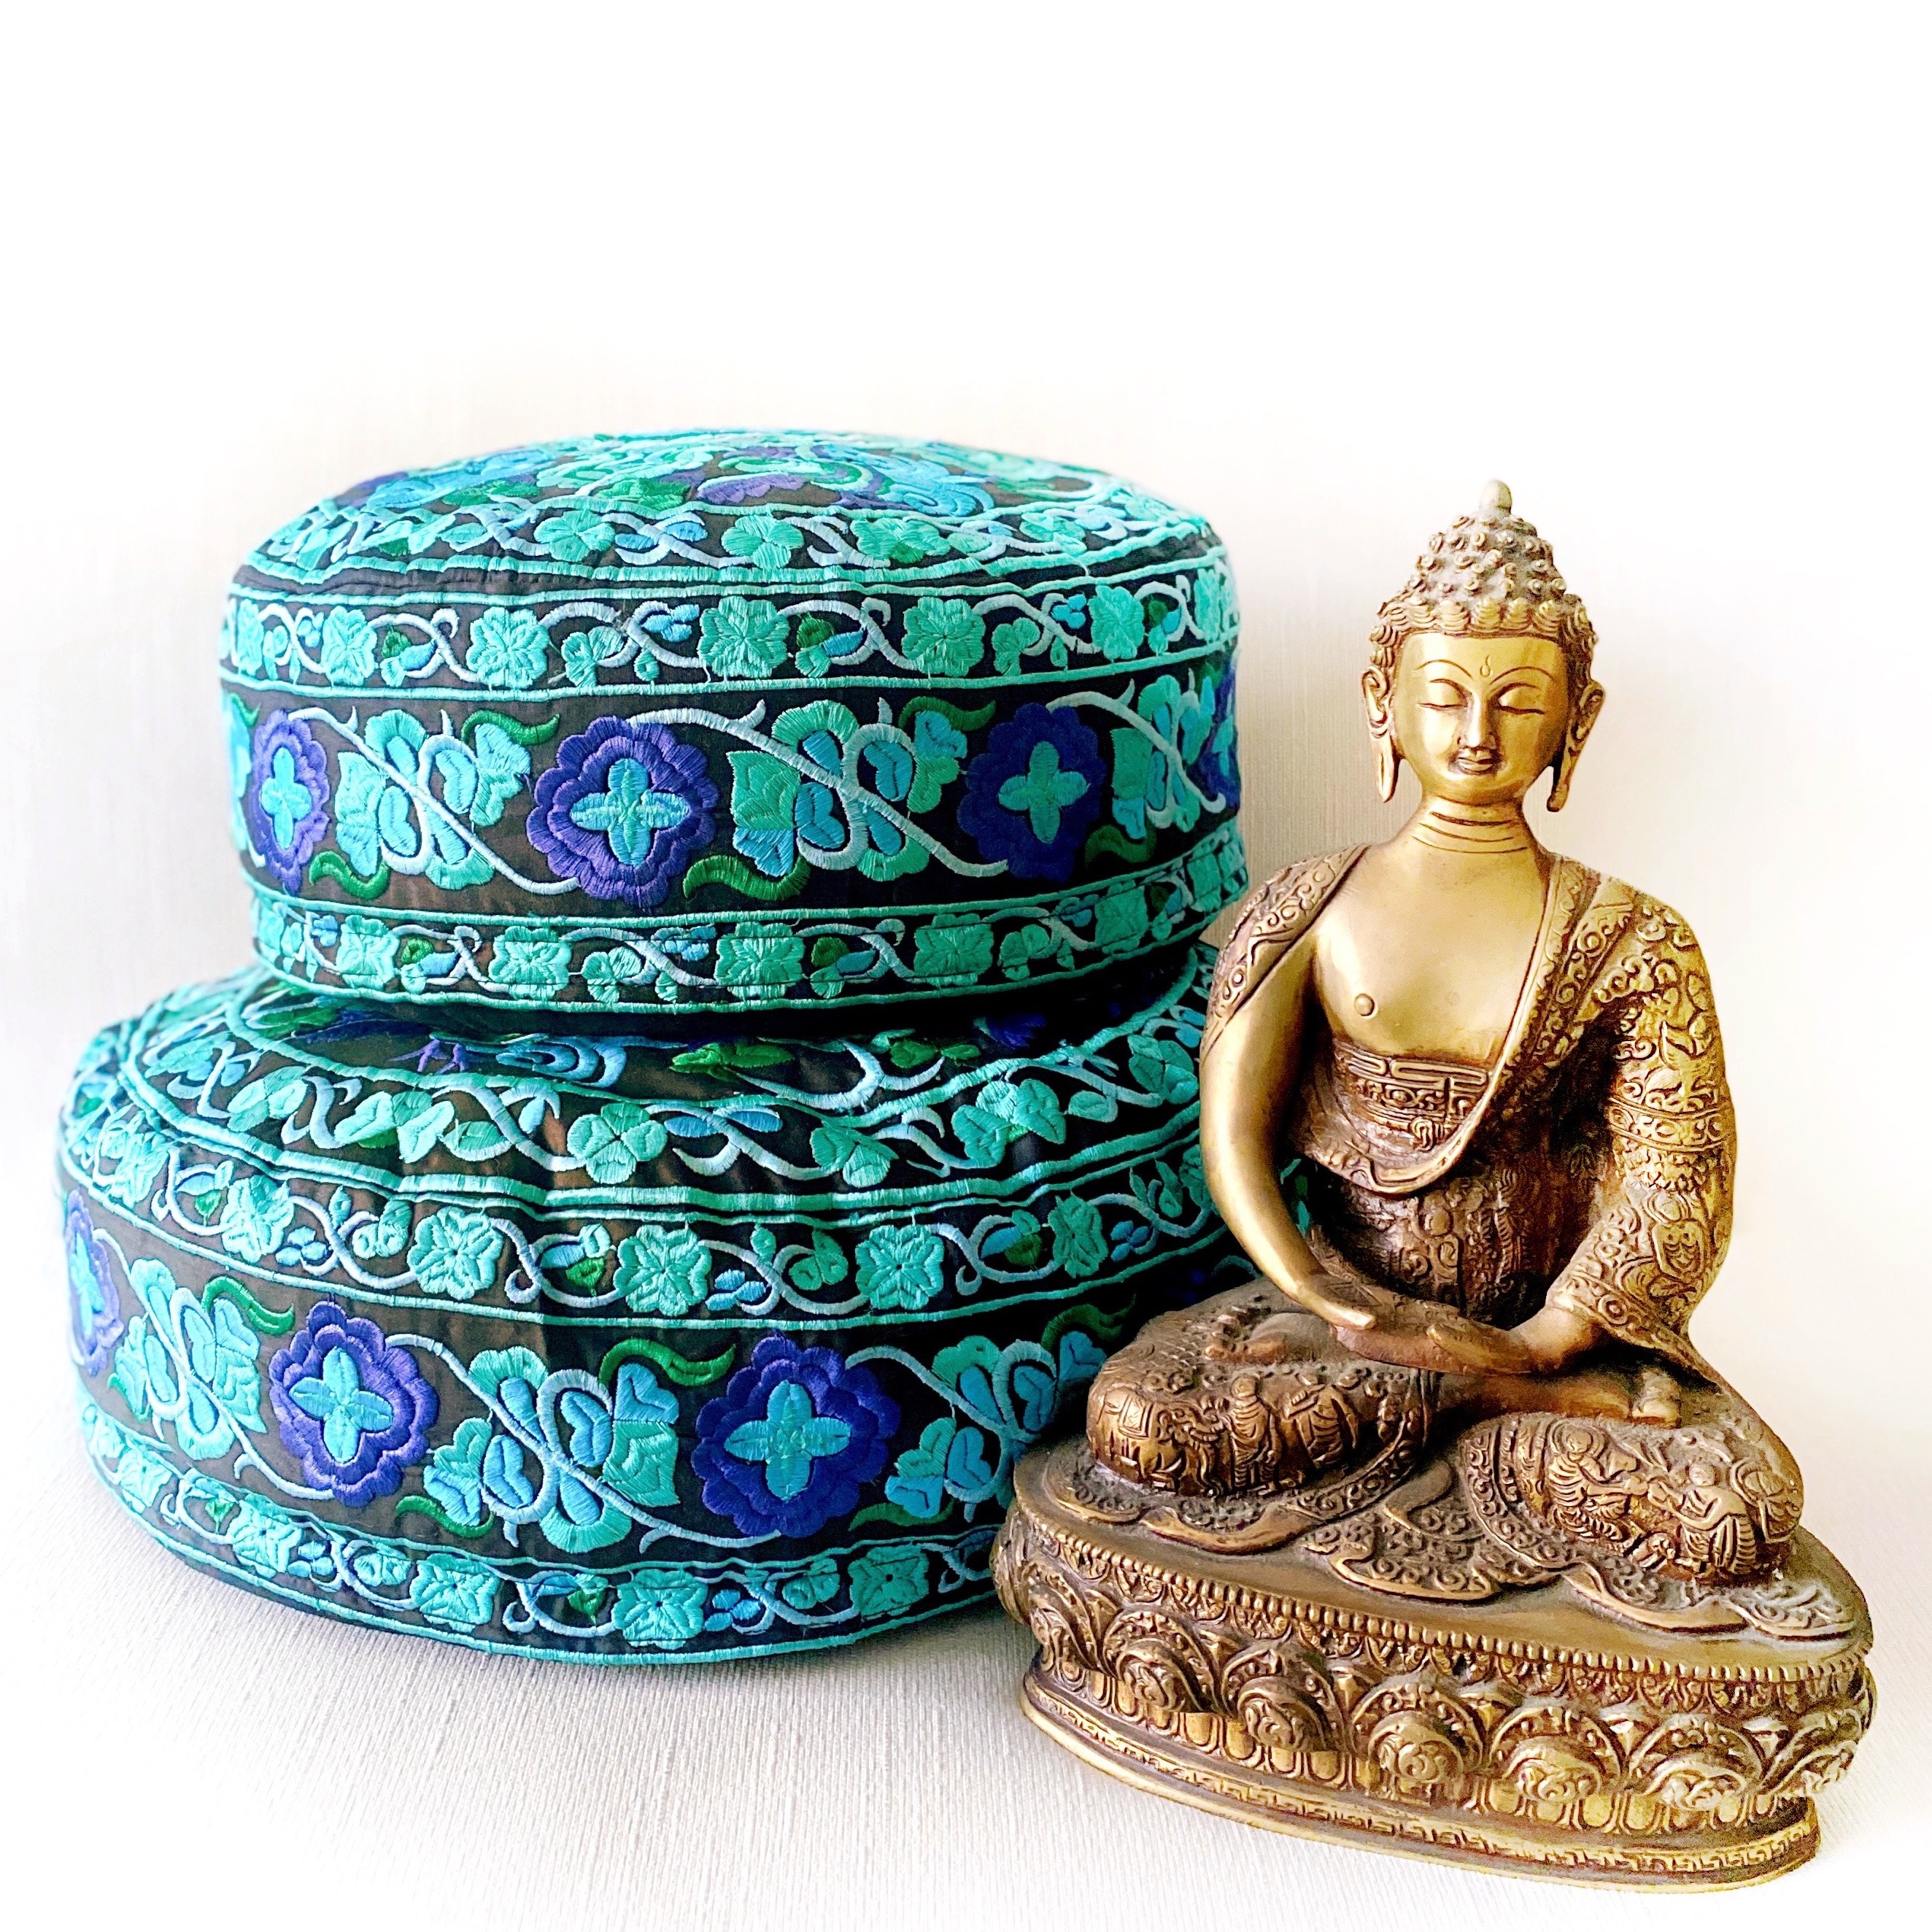 Embroidered Meditation Cushions | Blue + Green